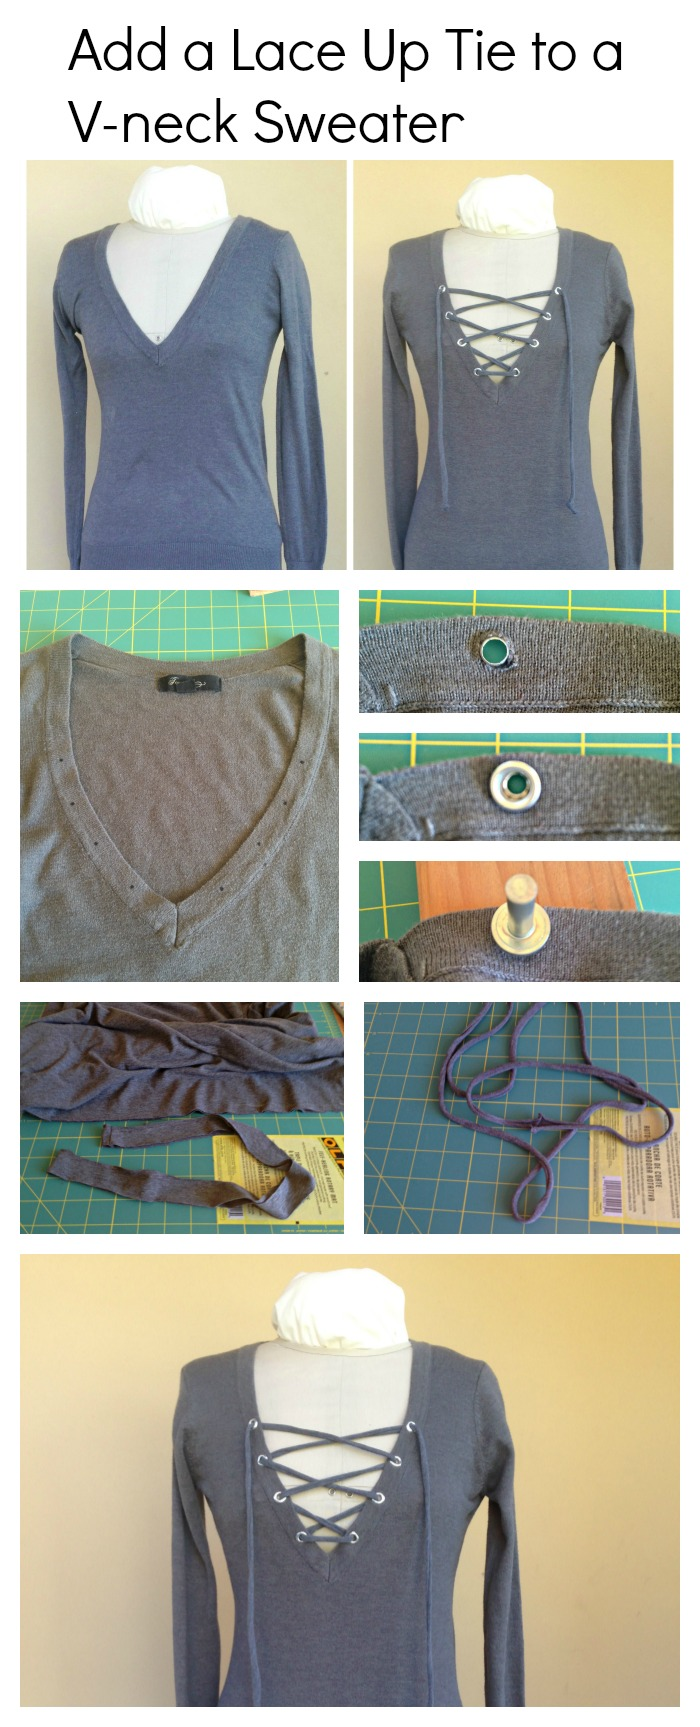 Add a lace Up Tie to a V-neck sweater - Step by step Overview